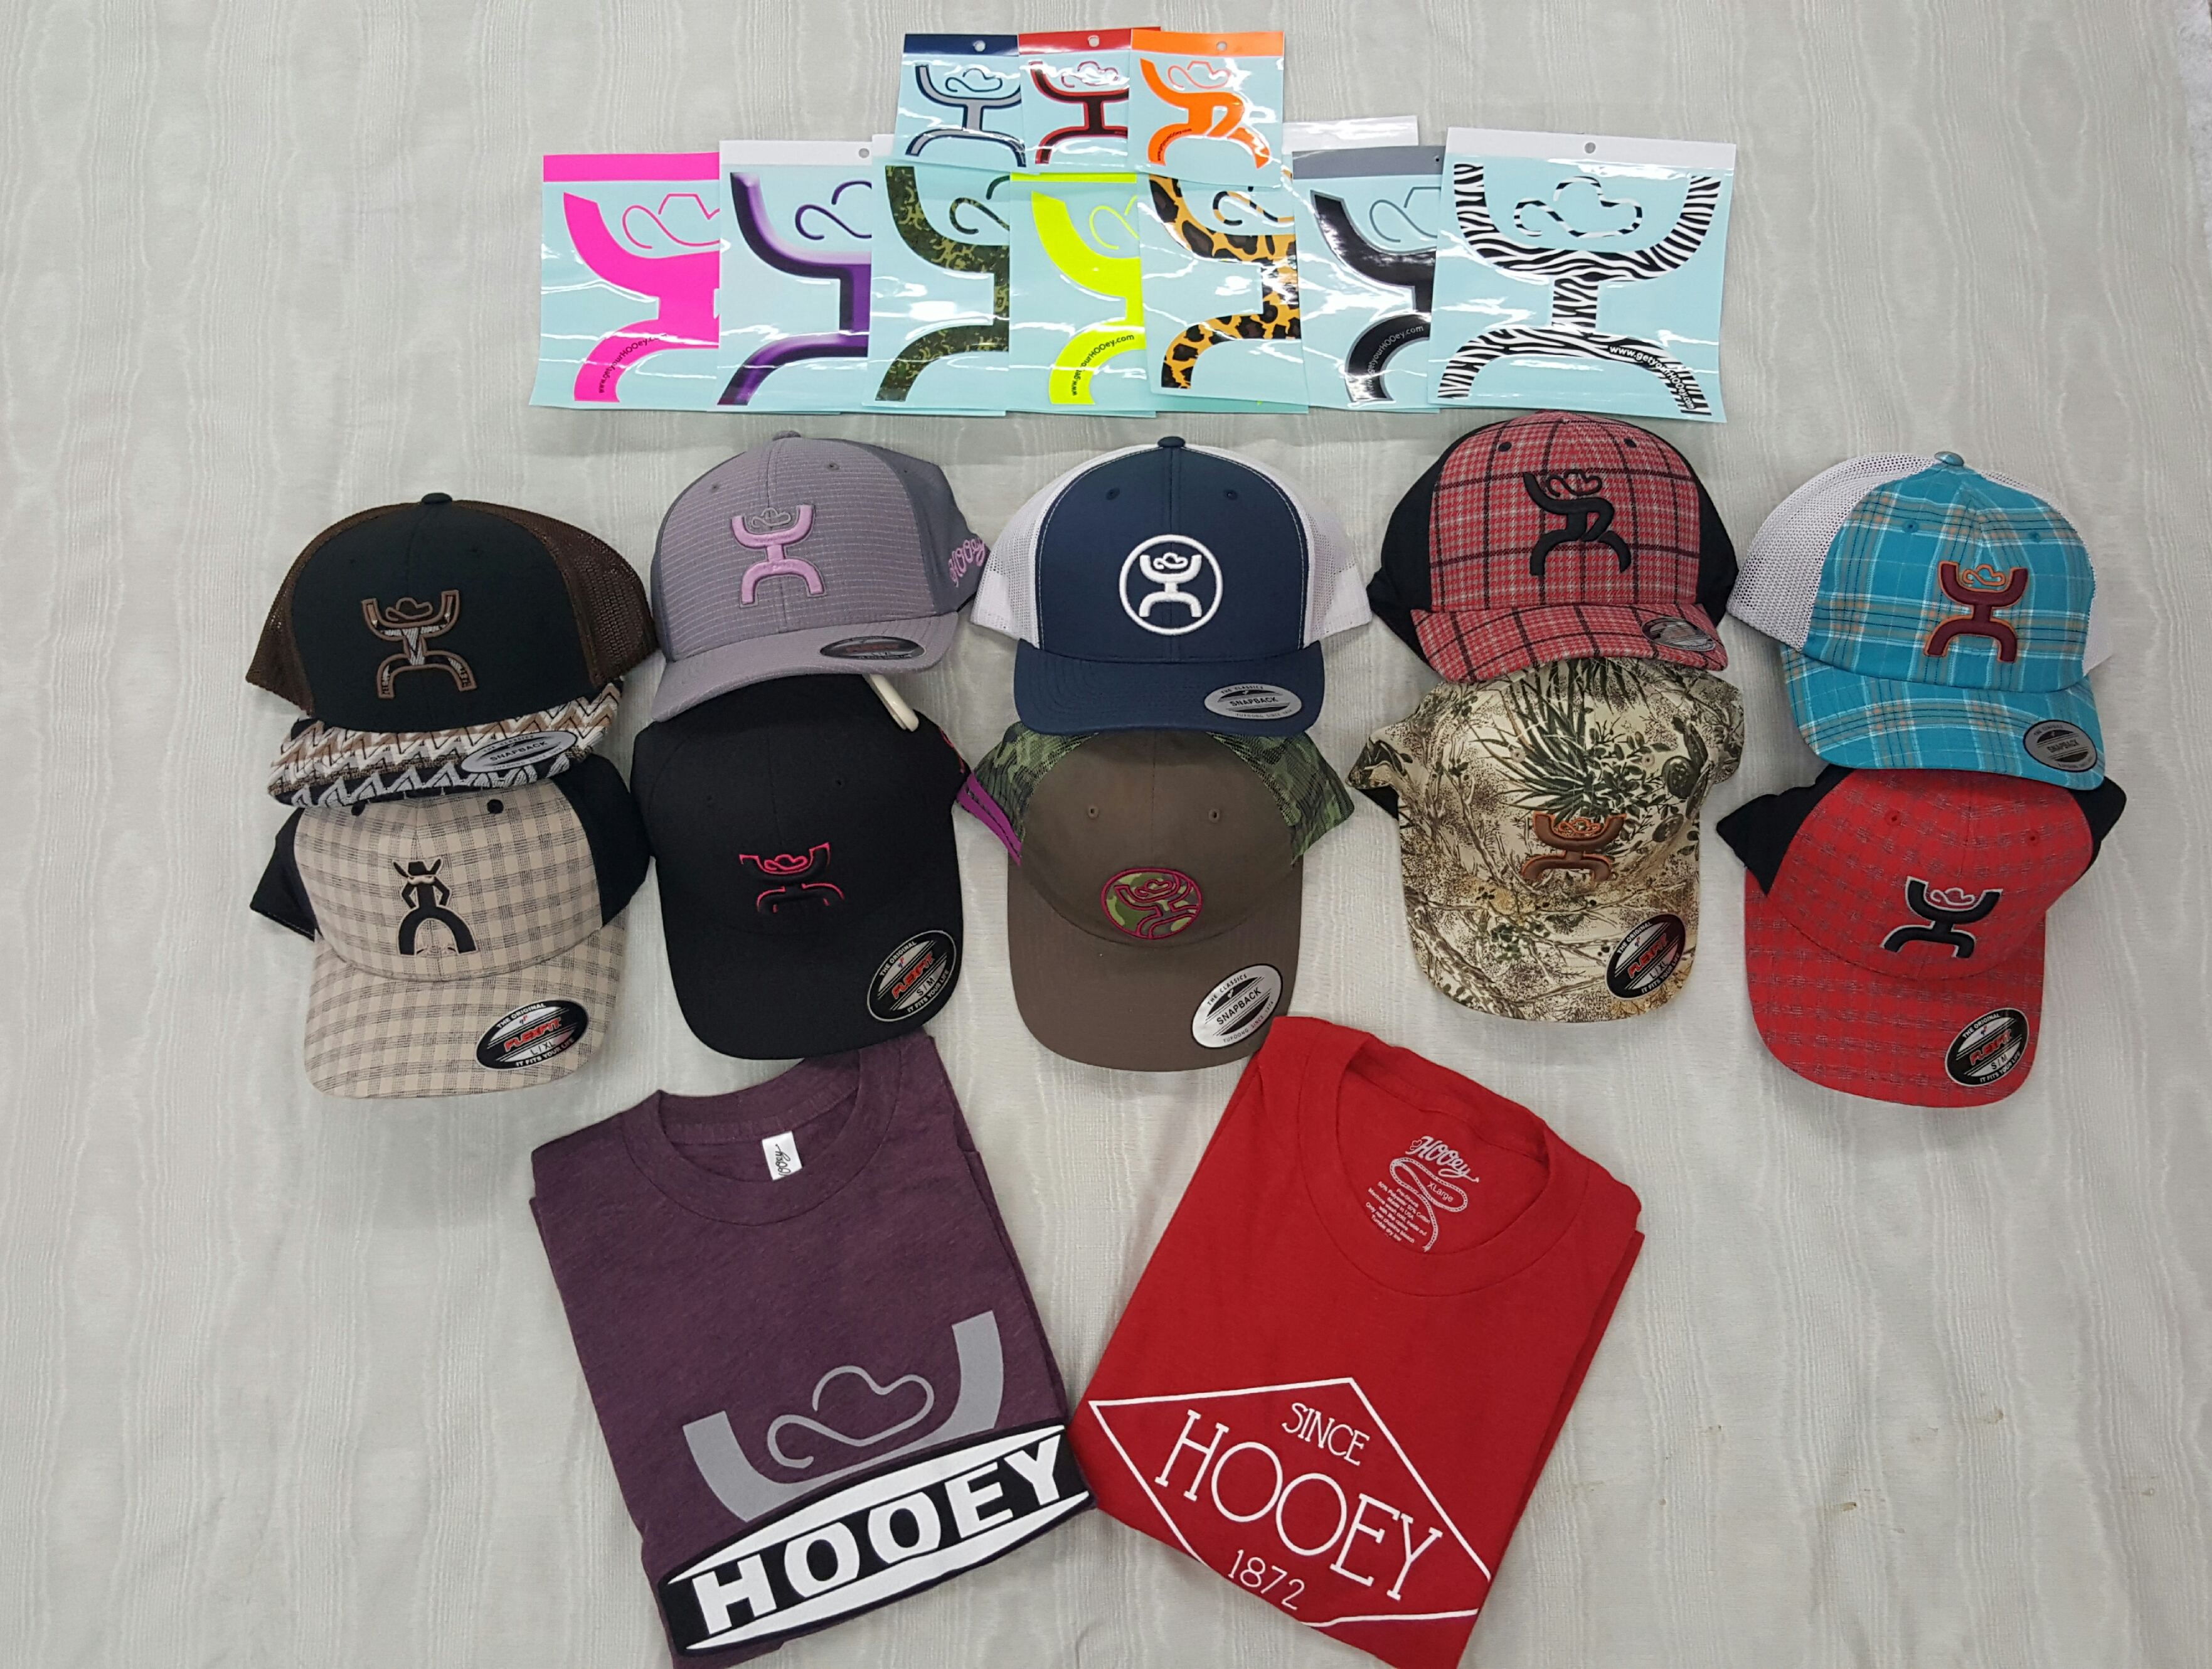 buy online 7c4a4 0b25e New line made here in Austin, TX called Lymbo Clothing. From shirts to baseball  caps, men and women s.